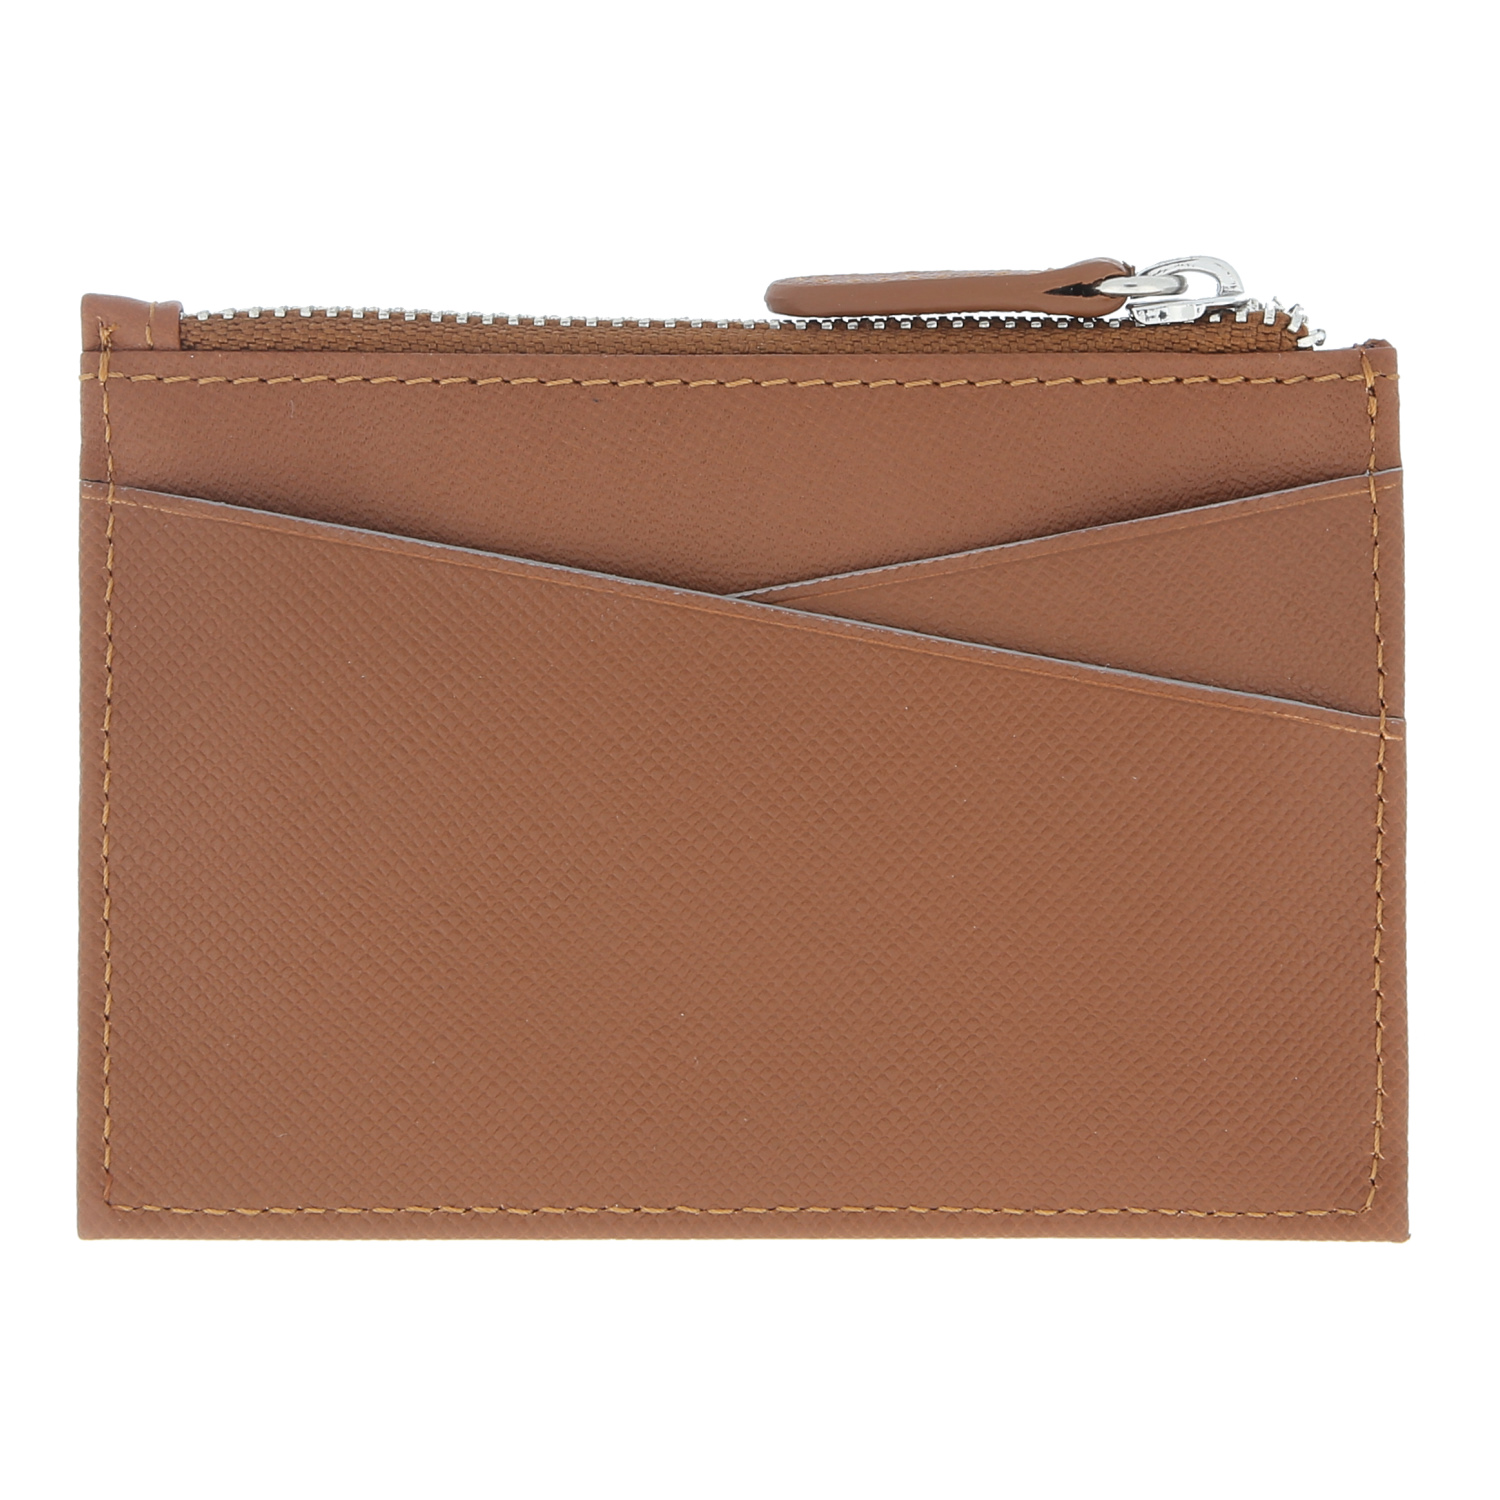 660719b74829 Buy Crossing Saffiano Card Case With Zip Pocket - Symbolism - Brown ...